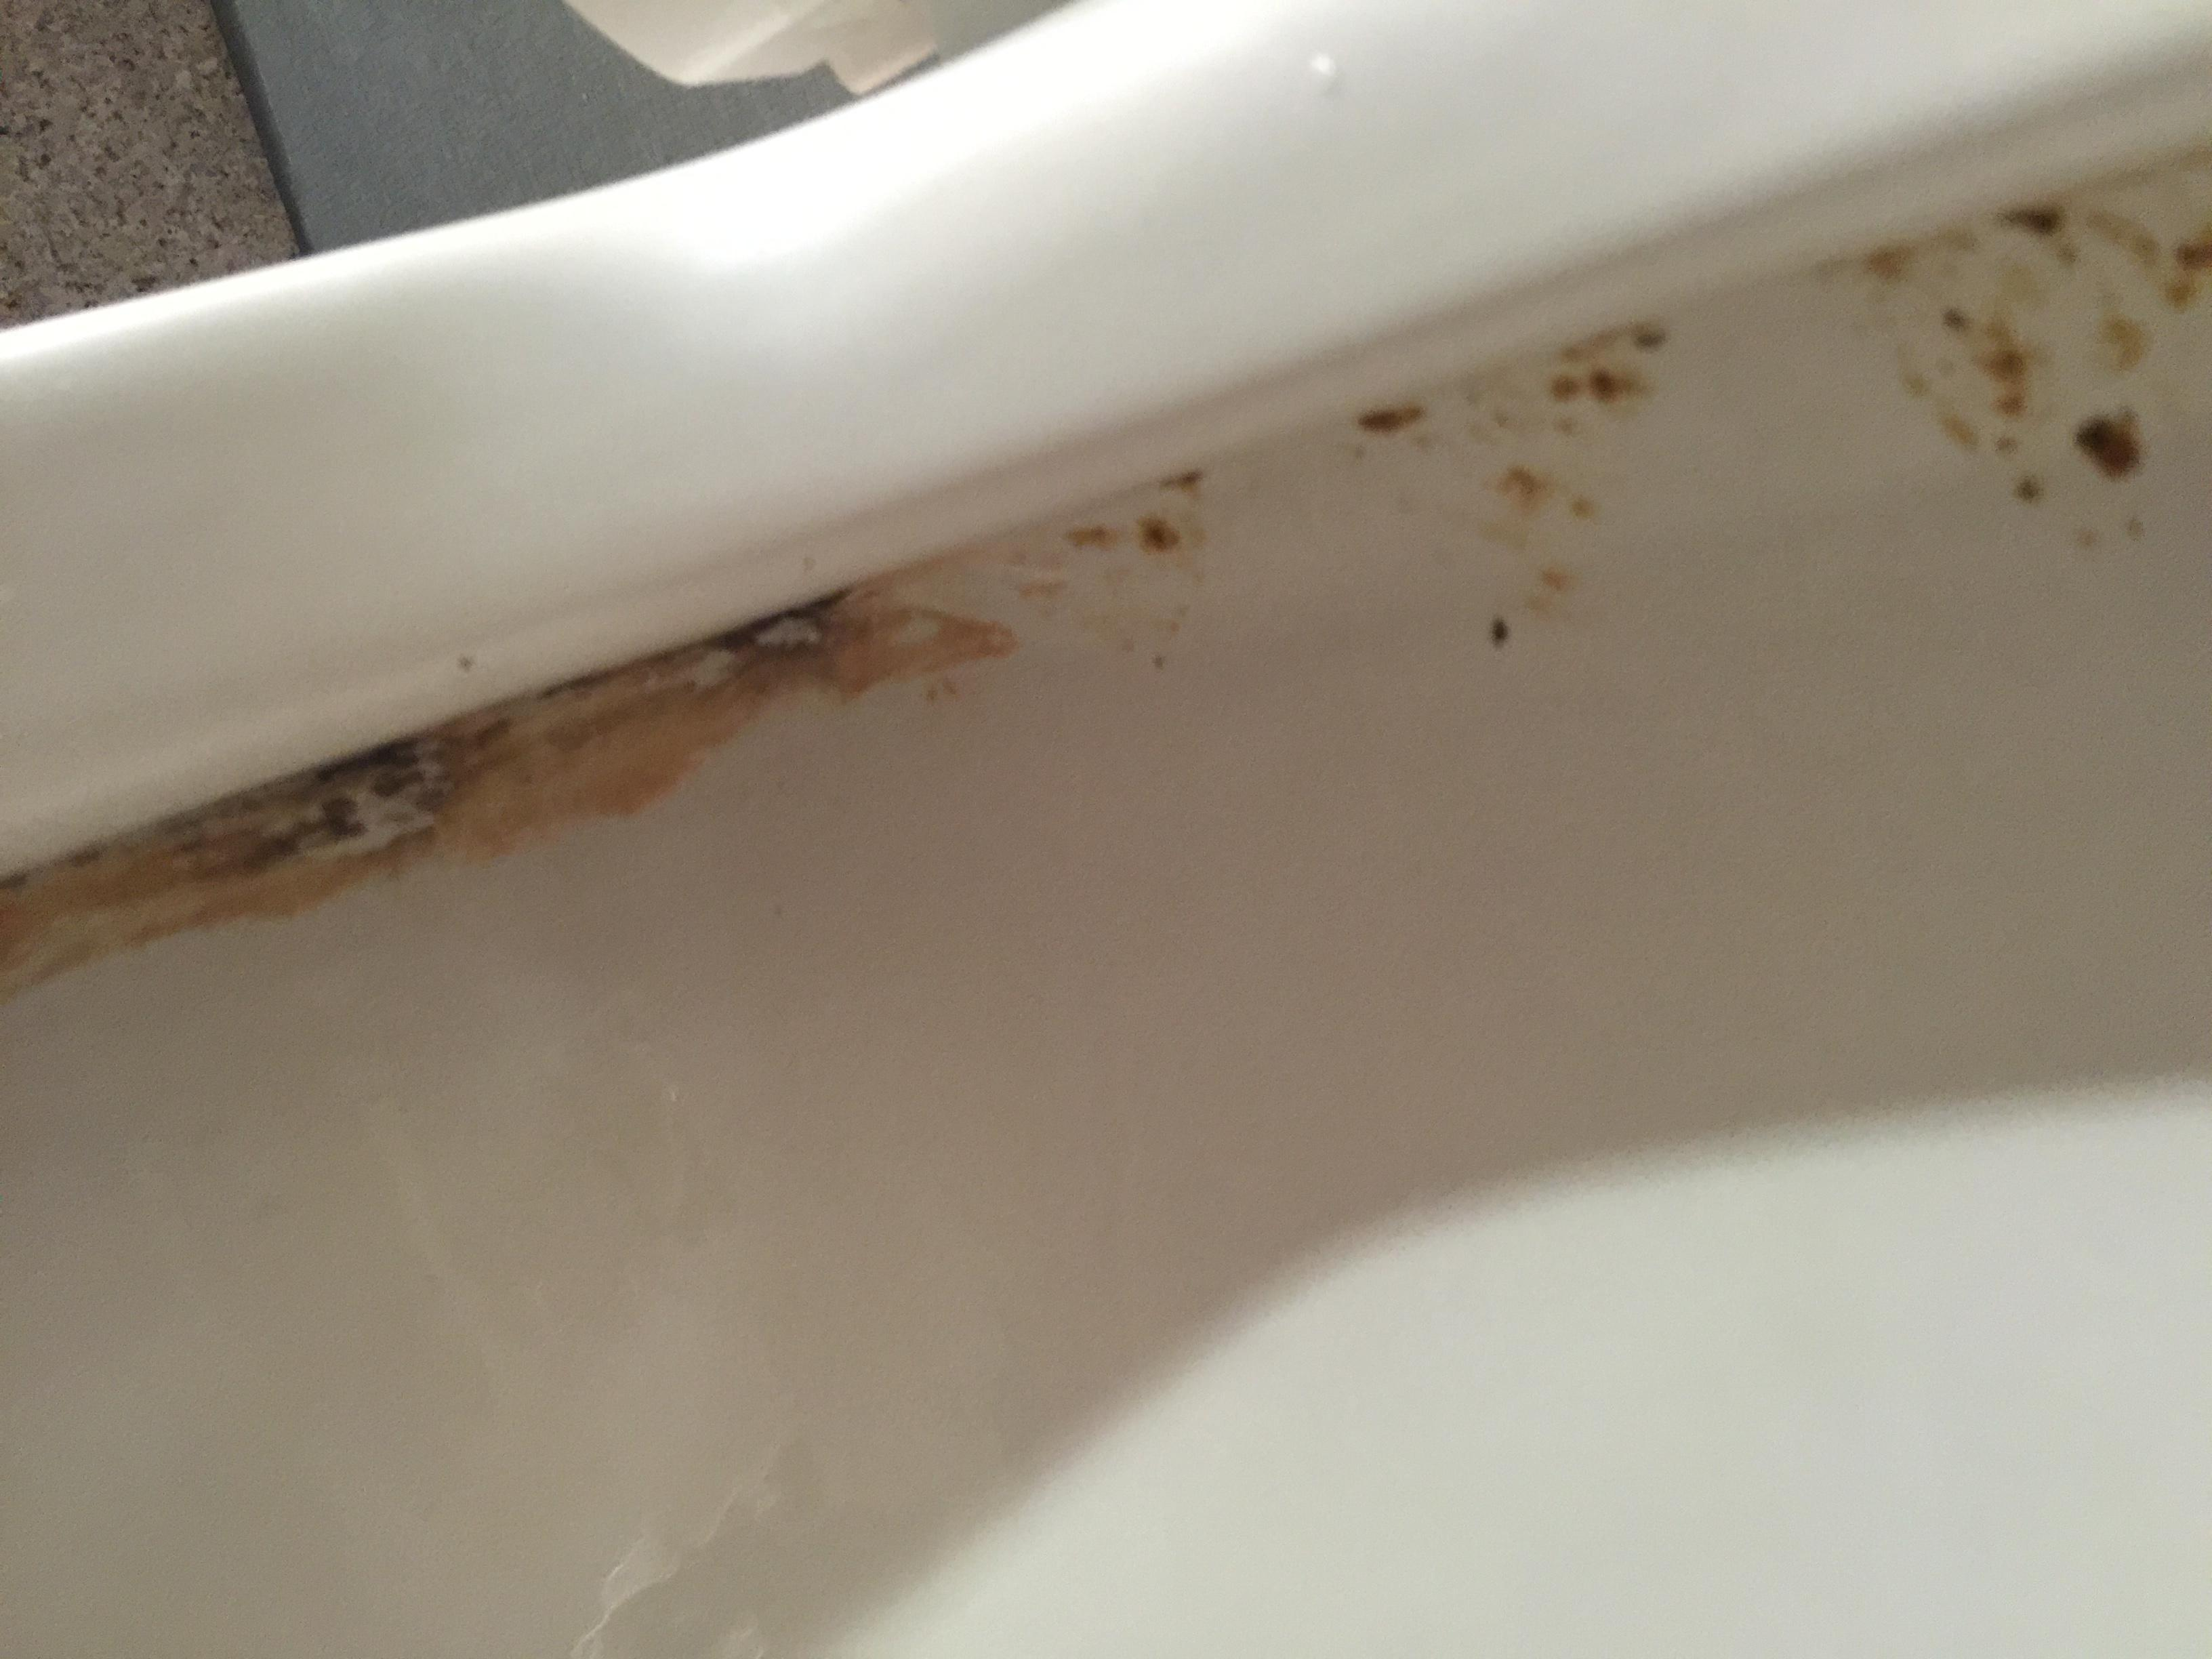 Uncleaned toilet bowl